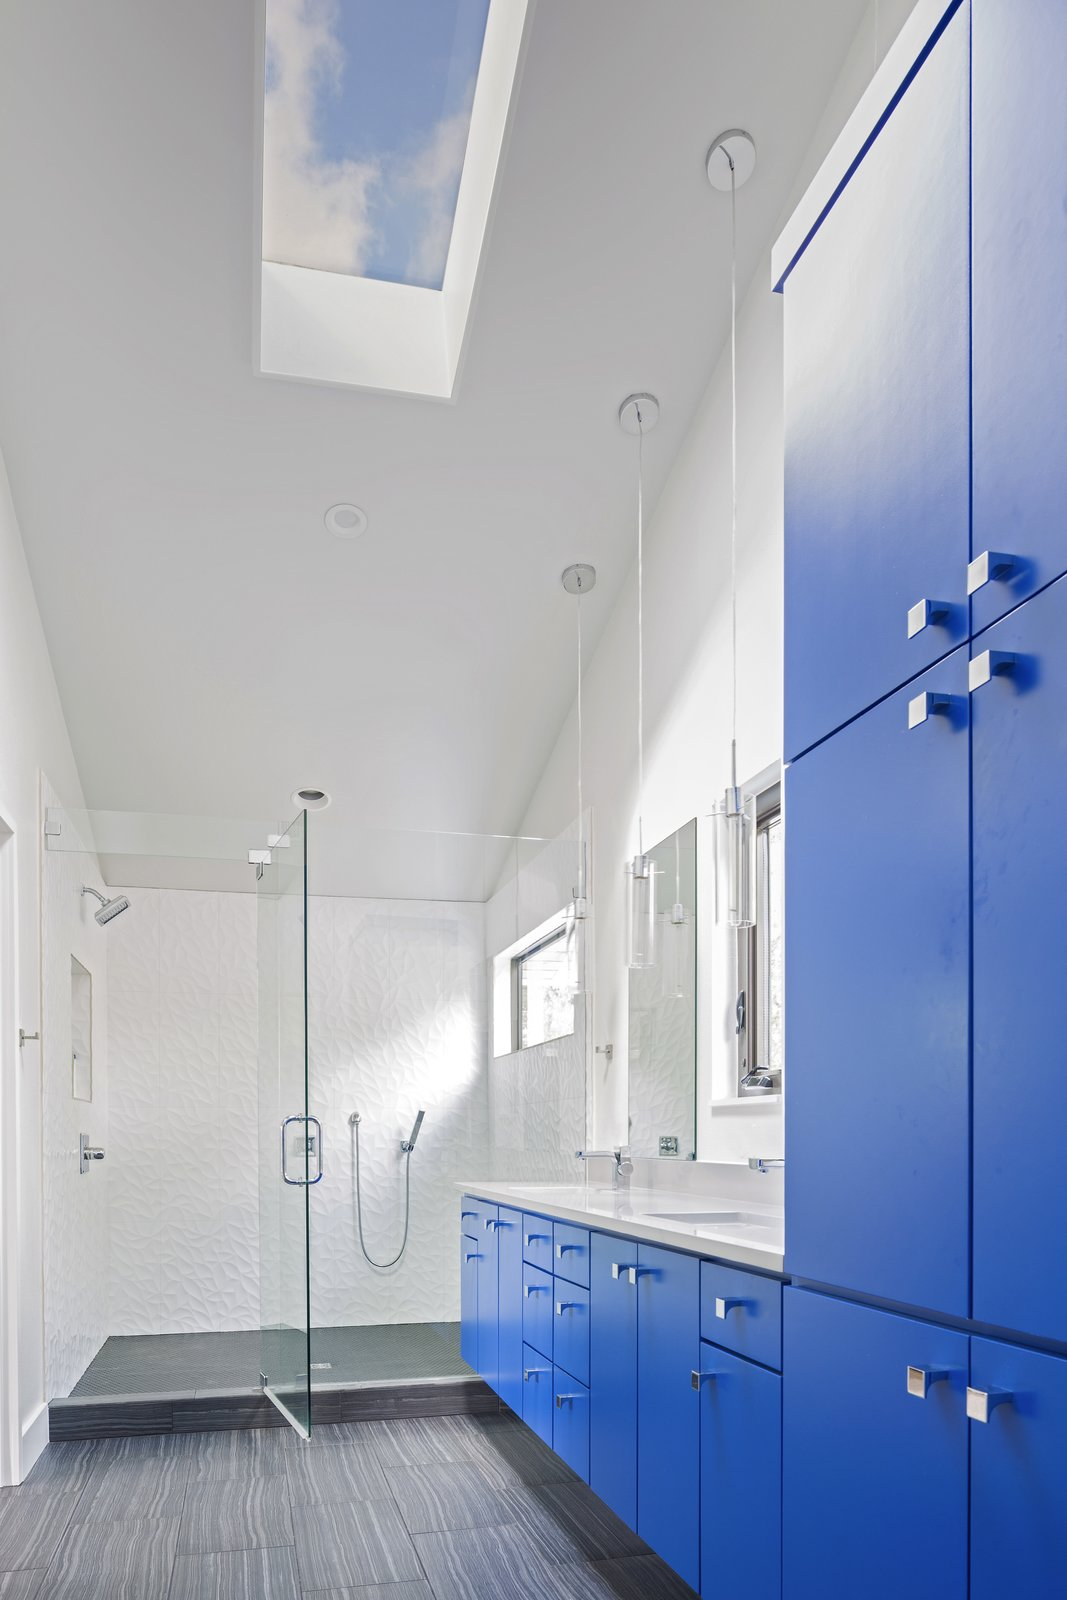 Bath Room, Pendant Lighting, Enclosed Shower, Undermount Sink, and Full Shower  Photo 8 of 8 in 8 Envy-Inducing Kitchens and Baths Posted by Our Community